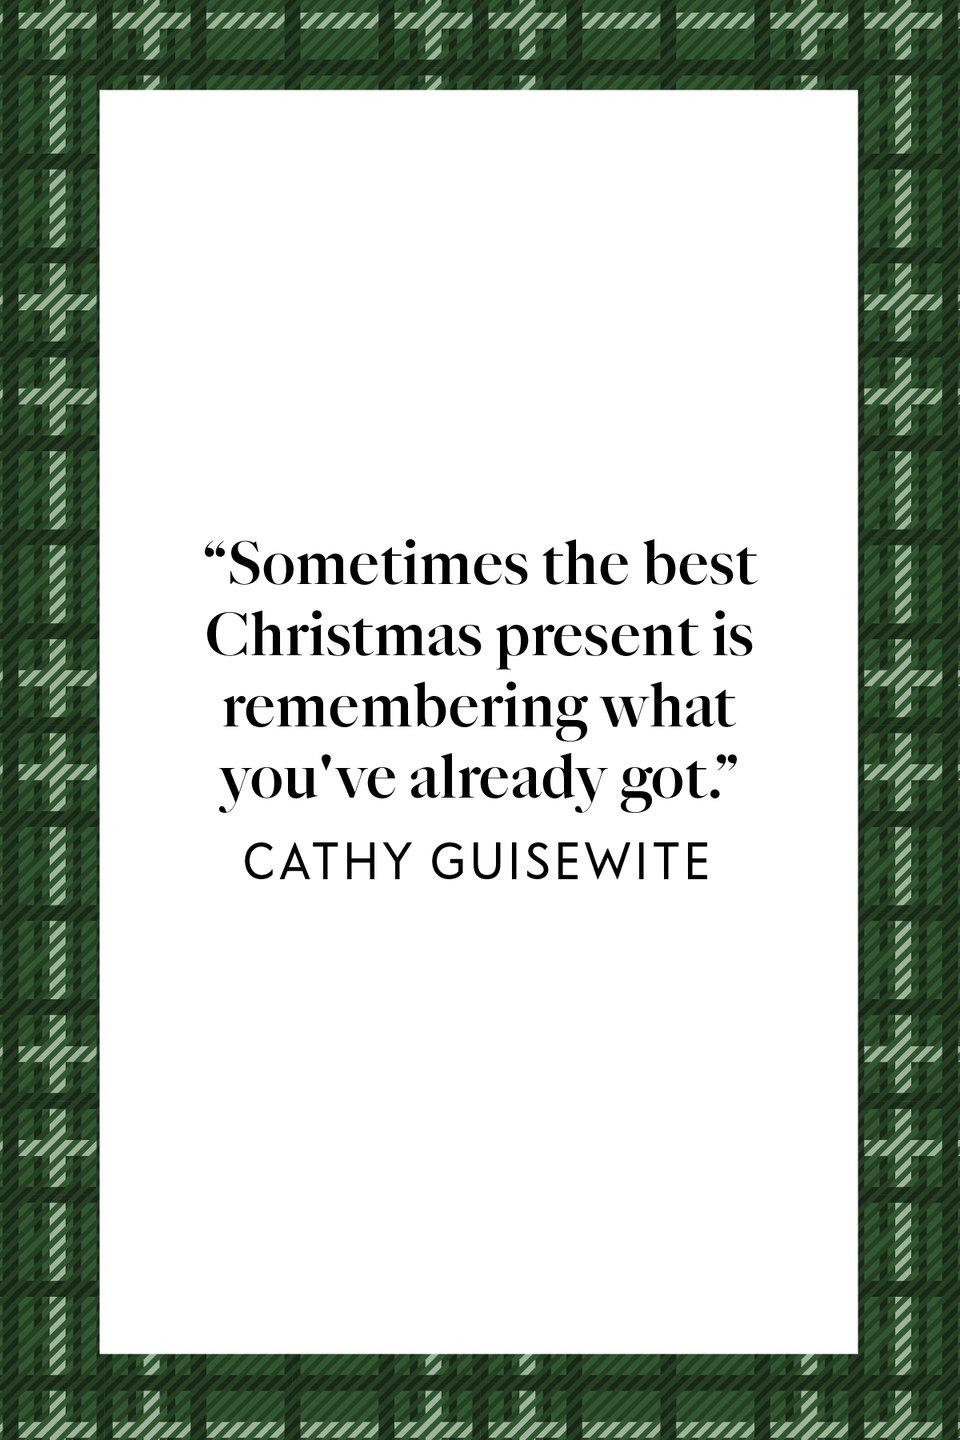 "<p>""Sometimes the best Christmas present is remembering what you've already got,"" the American cartoonist Cathy Guisewite behind the popular cartoon strip Cathy, which lasted 34 years, wrote in her fiction book, <em><a href=""https://www.amazon.com/Cathy-chronicles-Guisewite/dp/0836211162?tag=syn-yahoo-20&ascsubtag=%5Bartid%7C10072.g.34536312%5Bsrc%7Cyahoo-us"" rel=""nofollow noopener"" target=""_blank"" data-ylk=""slk:The Cathy Chronicles"" class=""link rapid-noclick-resp"">The Cathy Chronicles</a>.</em> </p>"